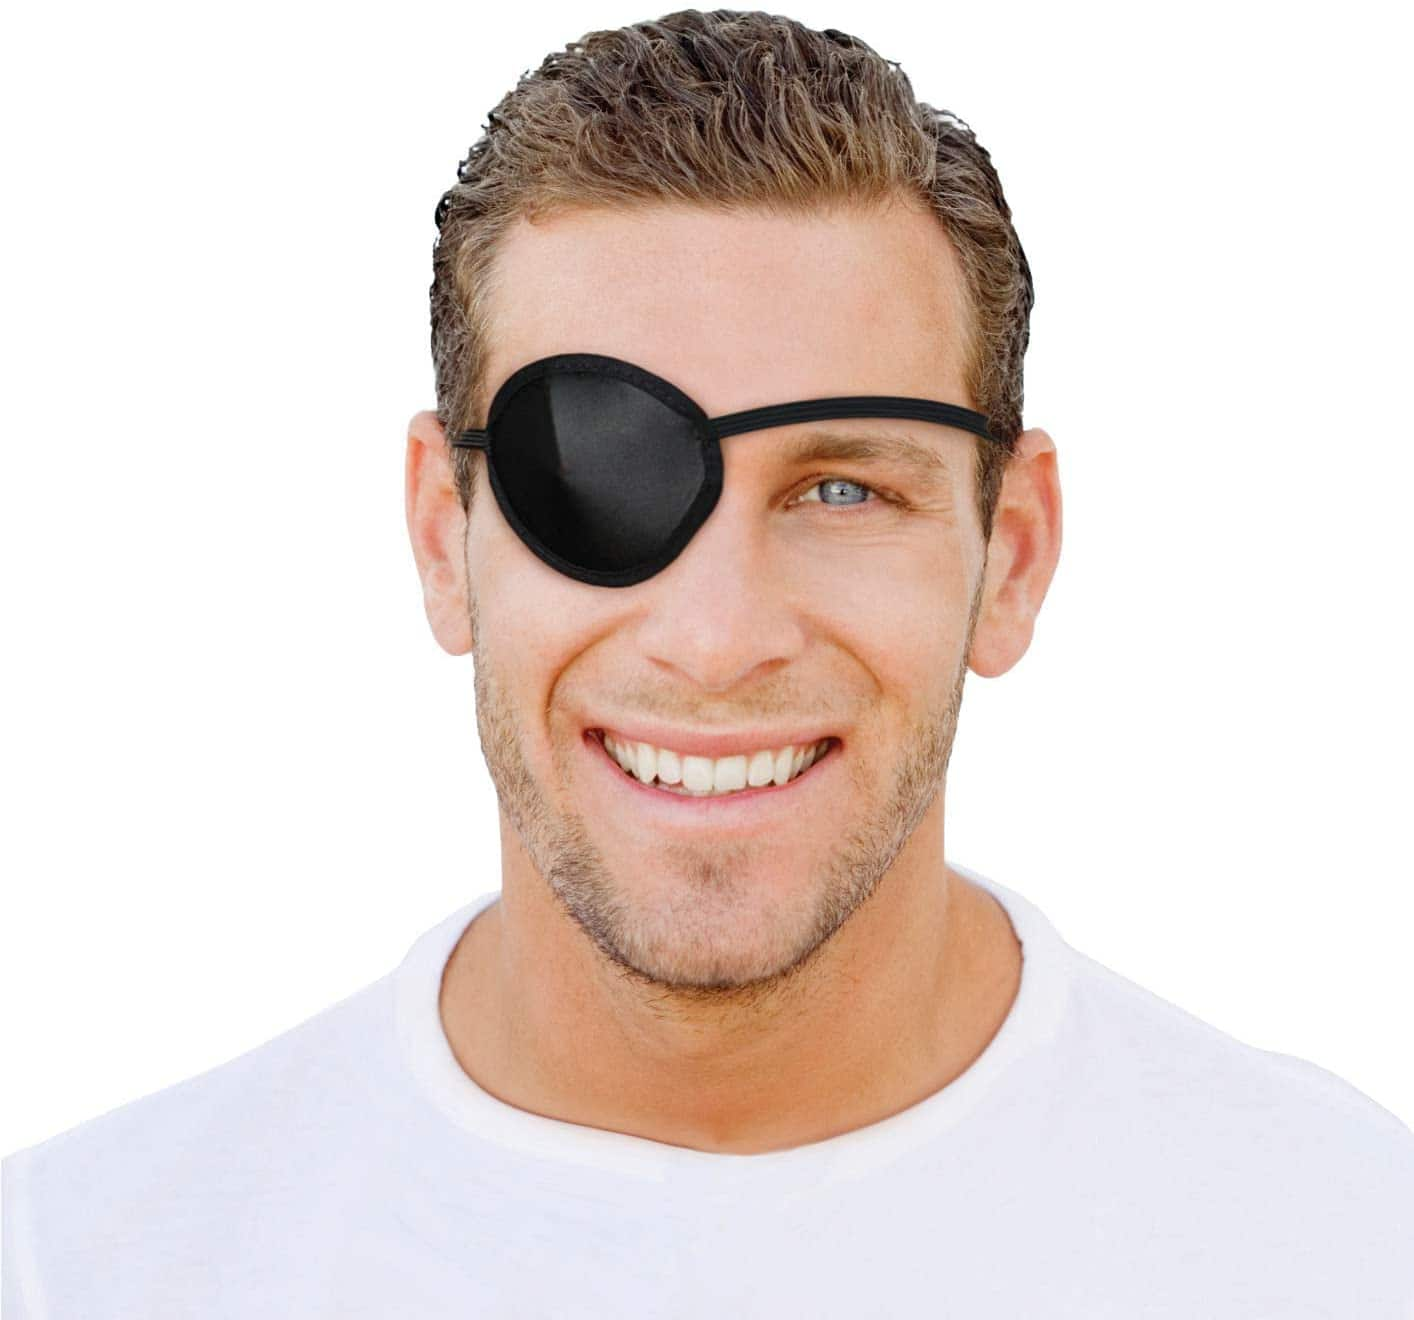 Flents Concave Eye Patch, Black (One Size) - $1.78 or less + FS w/ S&S